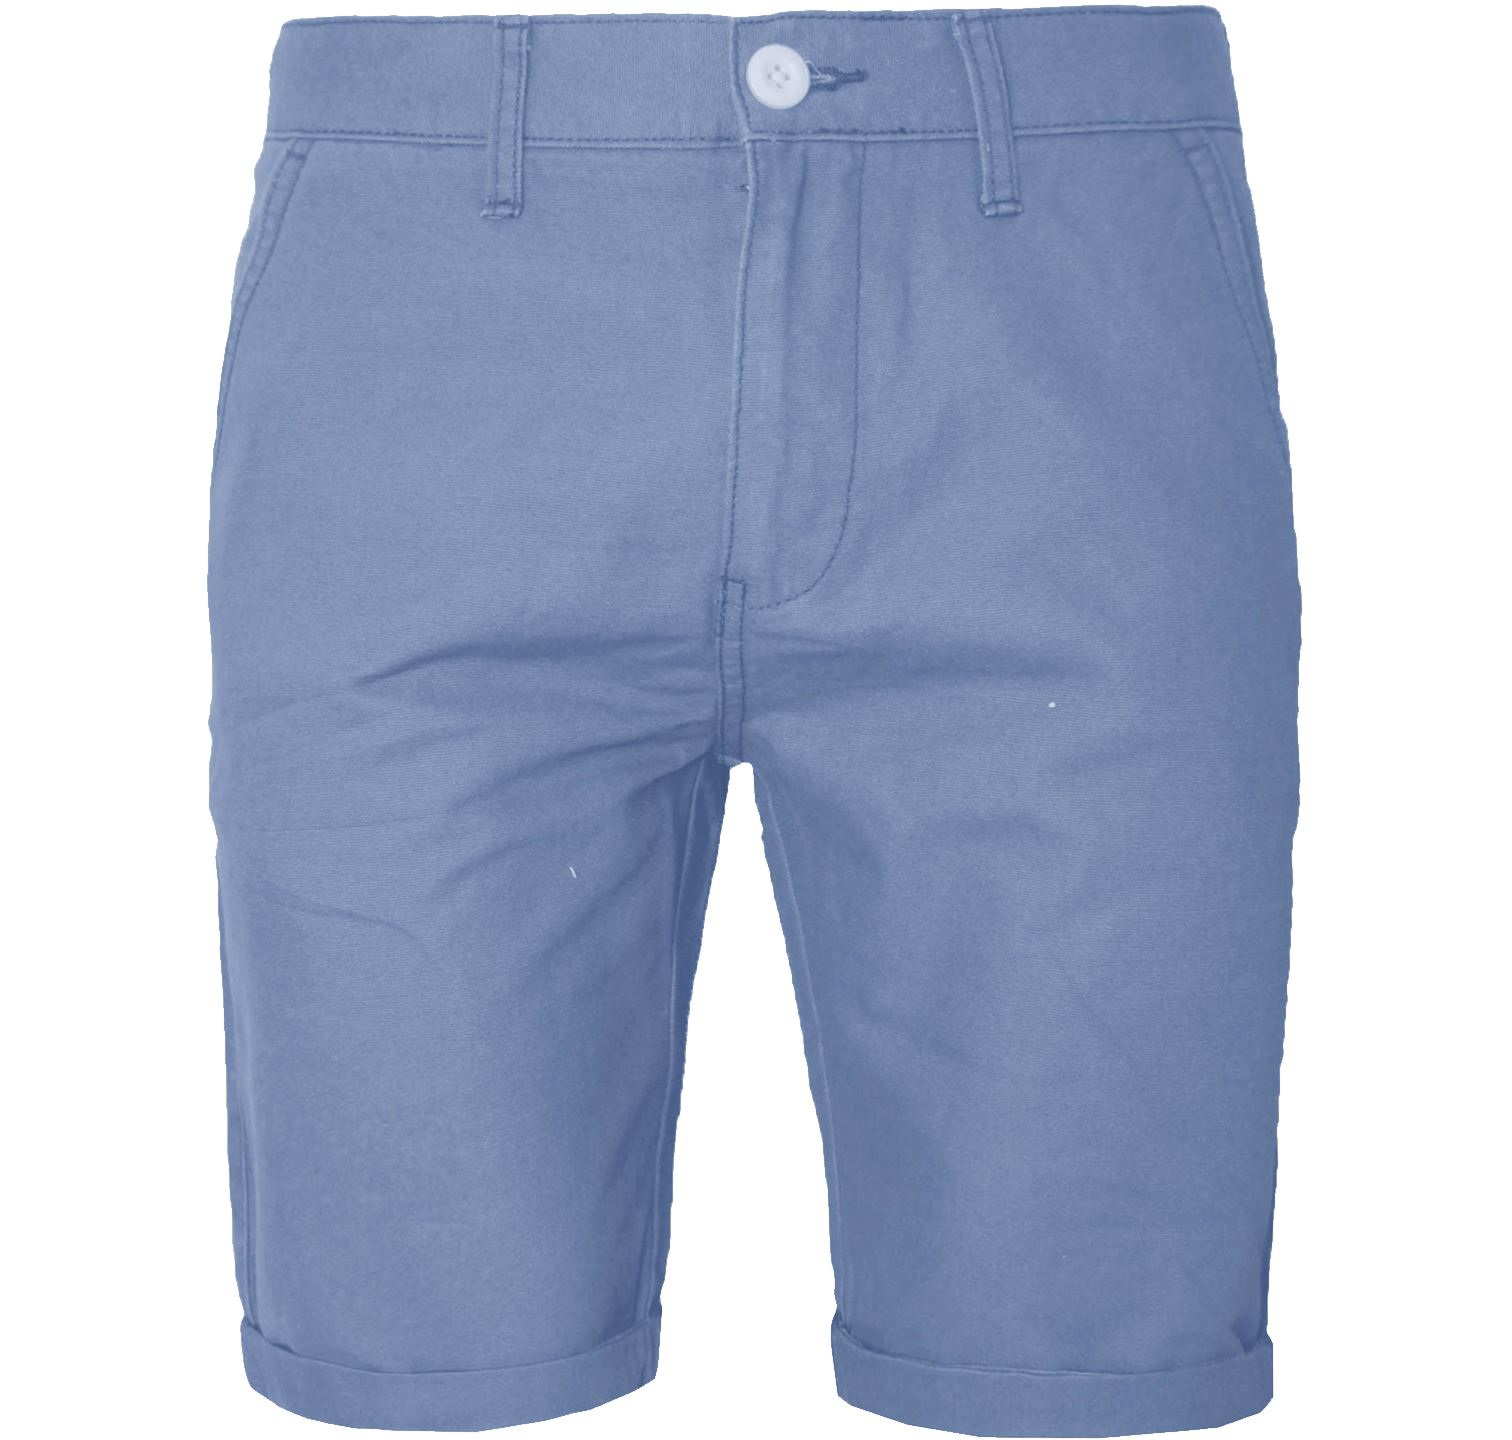 New Mens Chino Shorts Hidden Elastic Waist Band Rollup Cargo ...